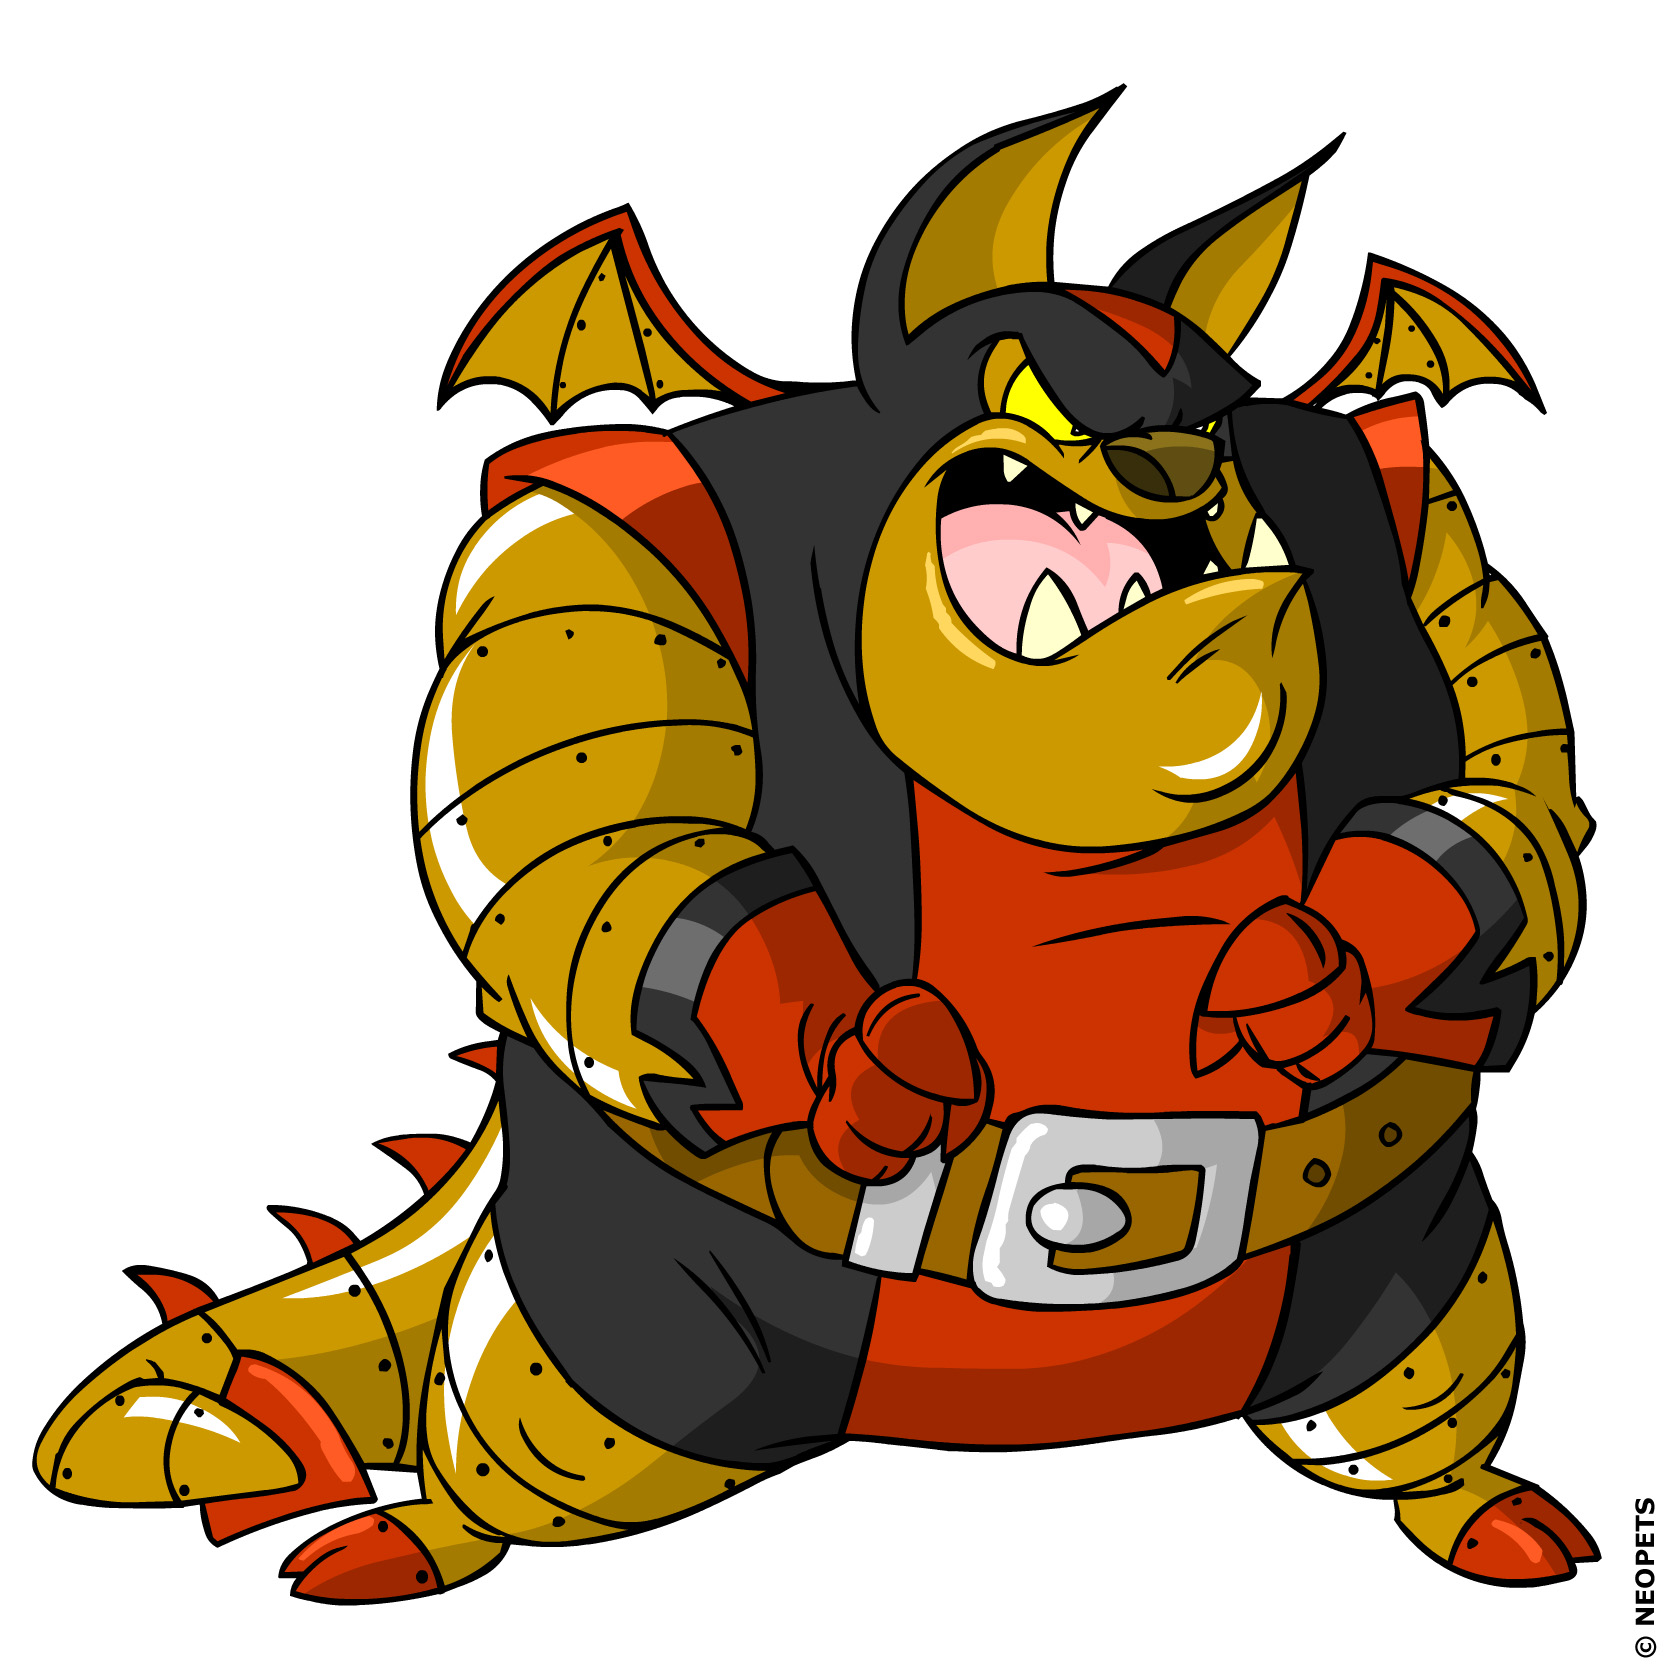 http://images.neopets.com/press/defenders_17.jpg